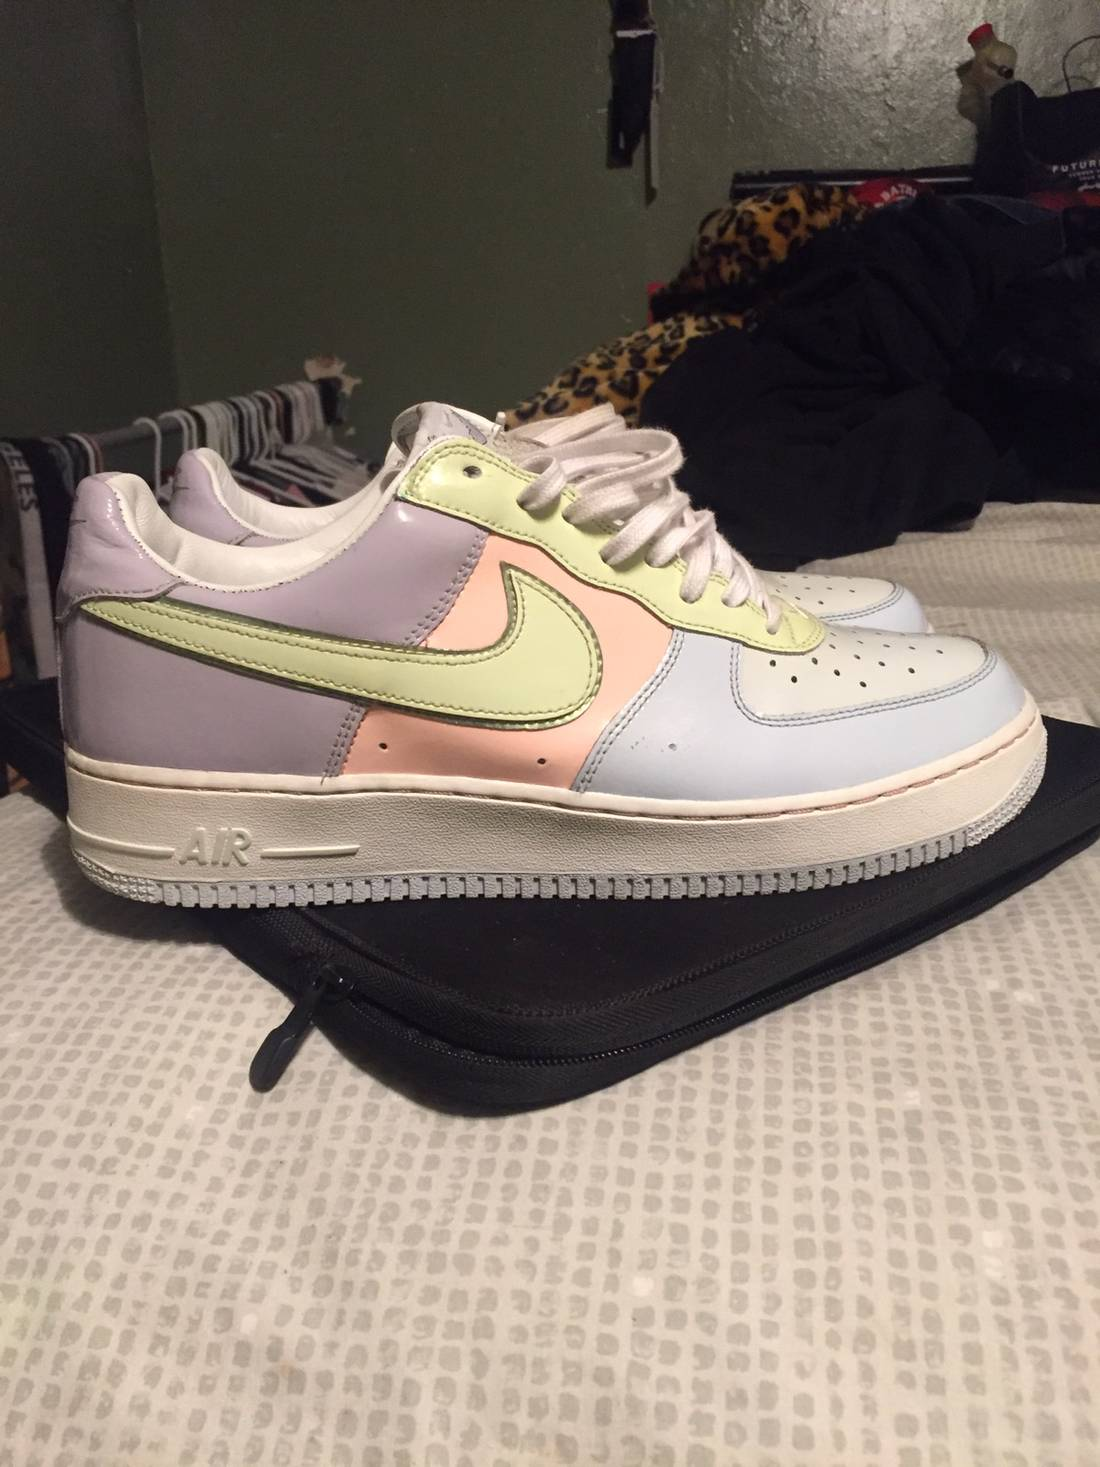 Nike 2005 Easter Egg Air Force 1 Premium Lows Size US 11  EU 44